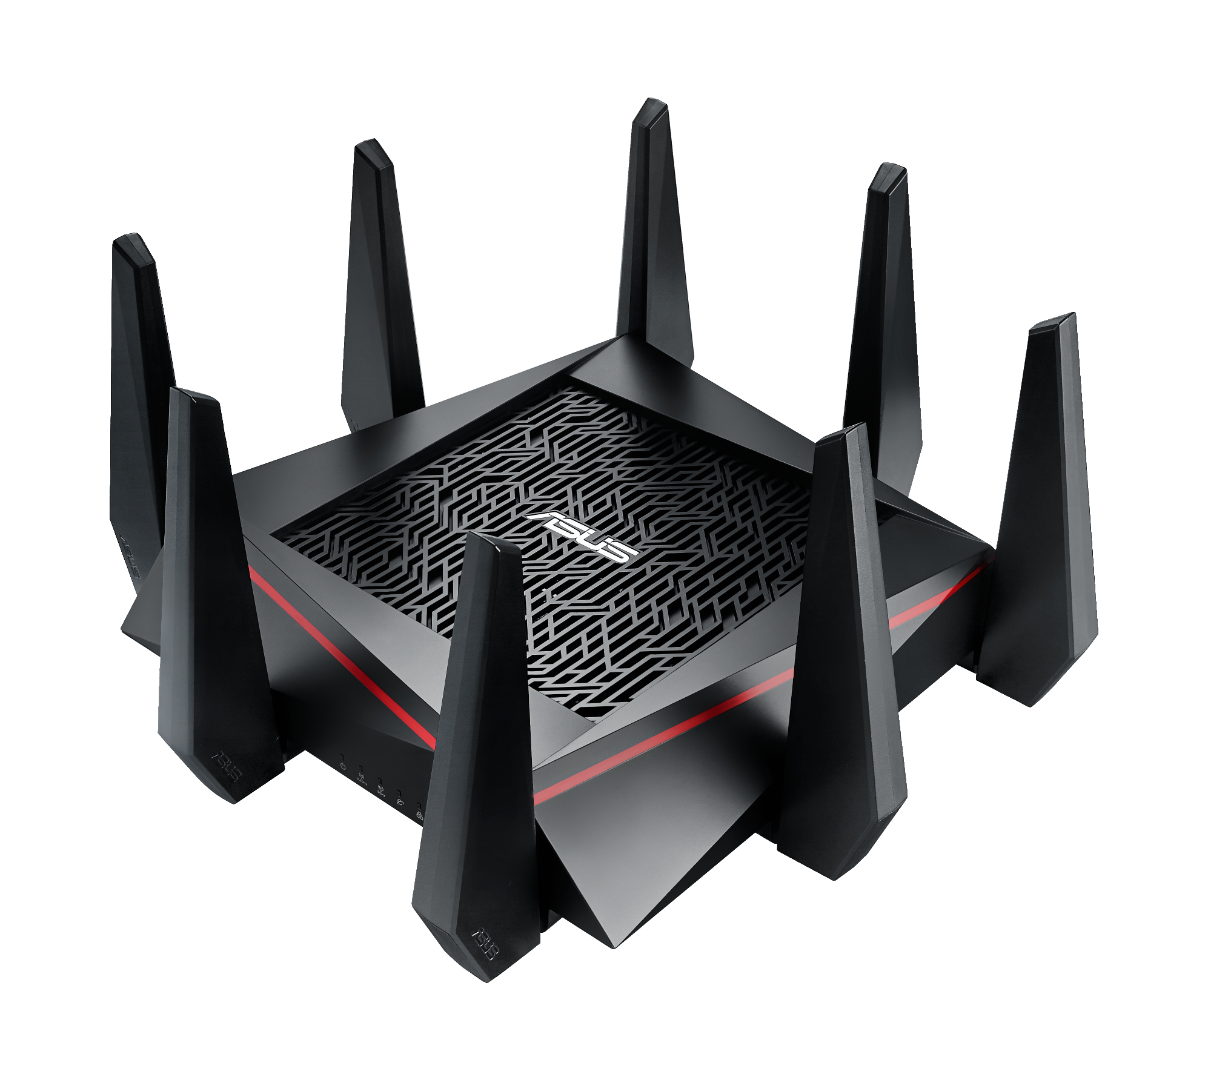 sus RT-AC5300 router